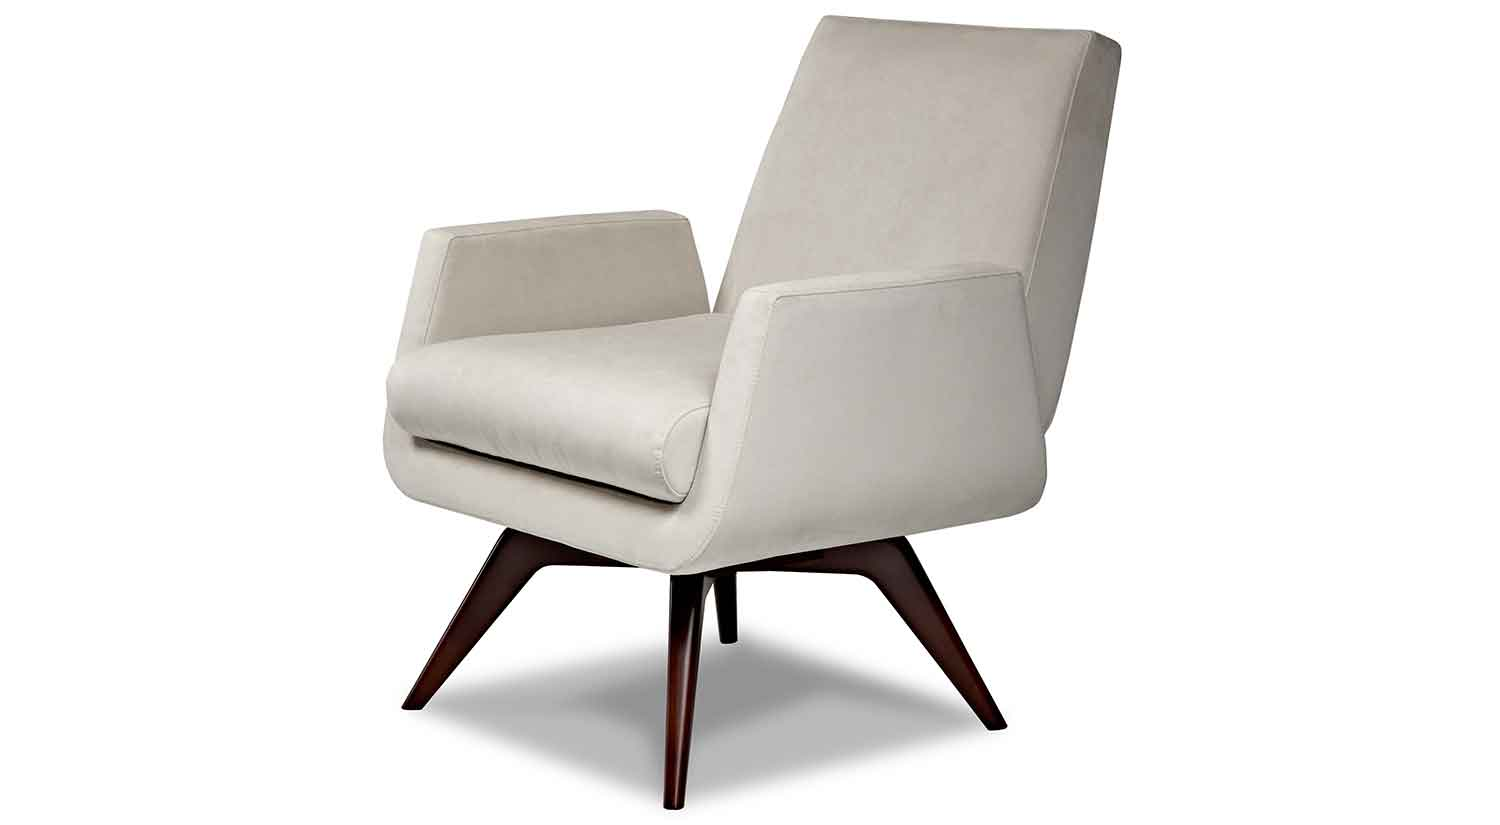 ... Ottoman Chair And Ottoman Sets Overstuffed Pier Ottoman Lounge Chair  With Ottoman Chair And Ottoman Sets HAU Furniture Chairs MARSHALL RECLINING  ACCENT ...